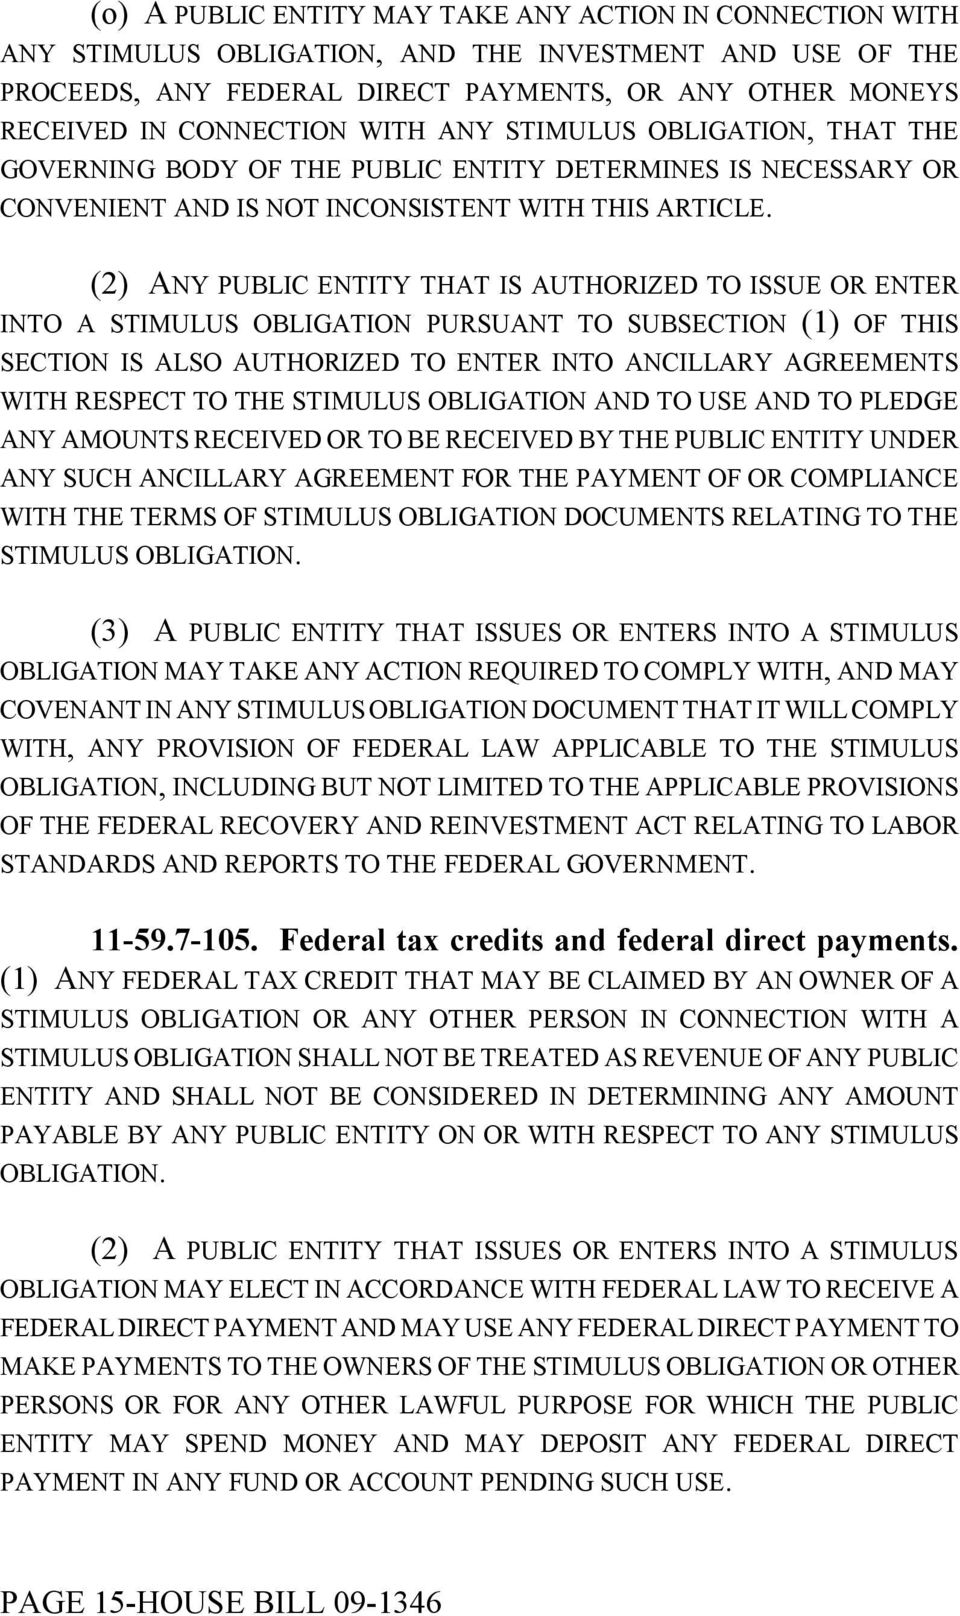 (2) ANY PUBLIC ENTITY THAT IS AUTHORIZED TO ISSUE OR ENTER INTO A STIMULUS OBLIGATION PURSUANT TO SUBSECTION (1) OF THIS SECTION IS ALSO AUTHORIZED TO ENTER INTO ANCILLARY AGREEMENTS WITH RESPECT TO